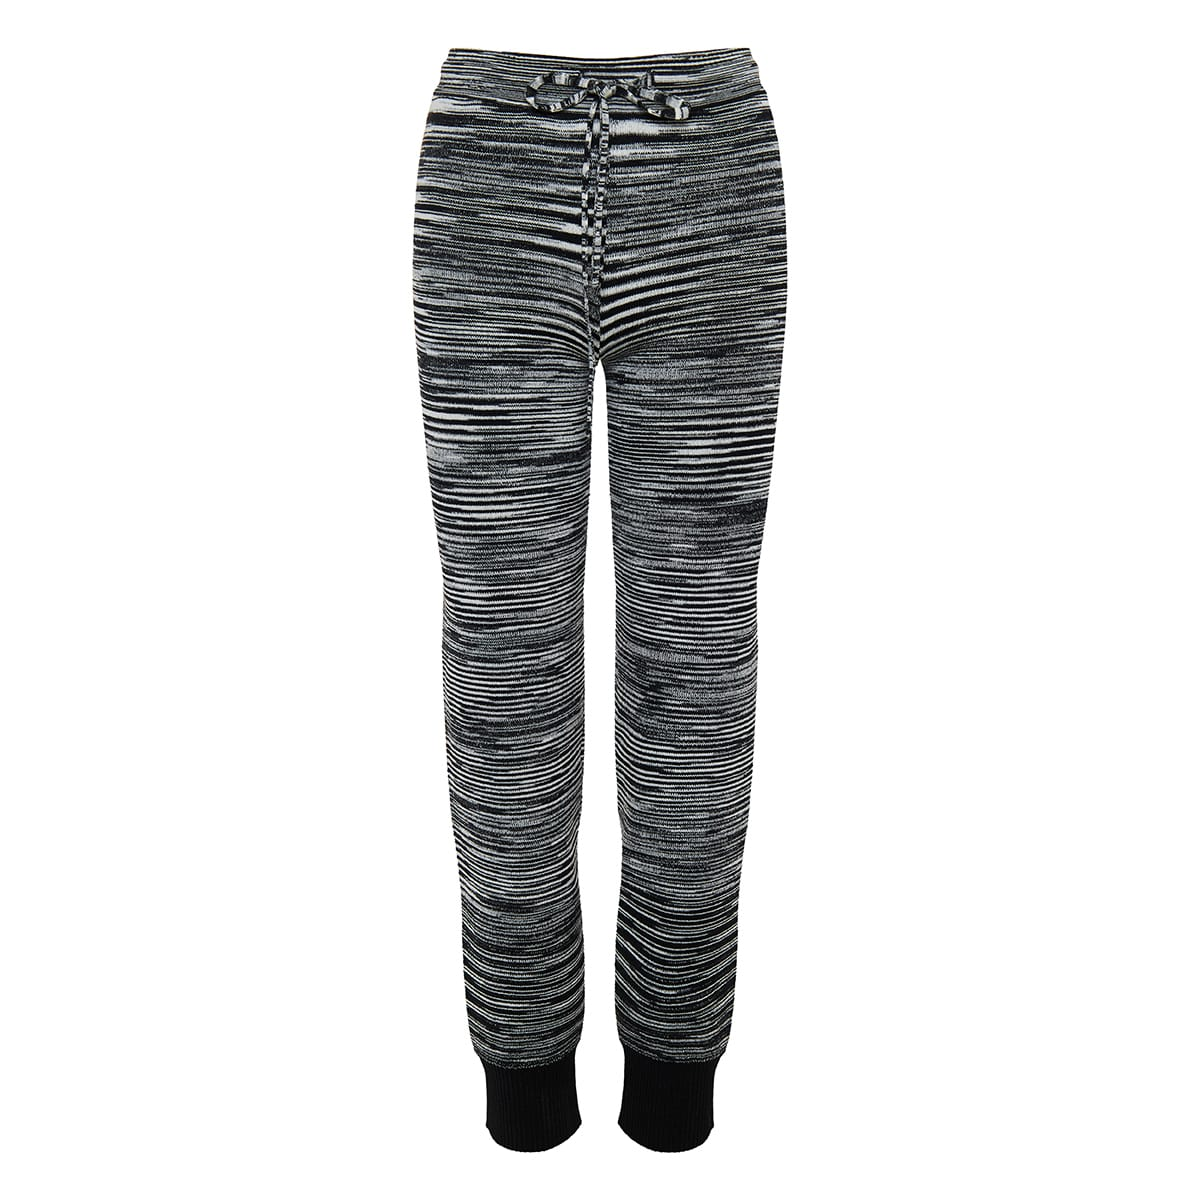 Graphic knitted trousers